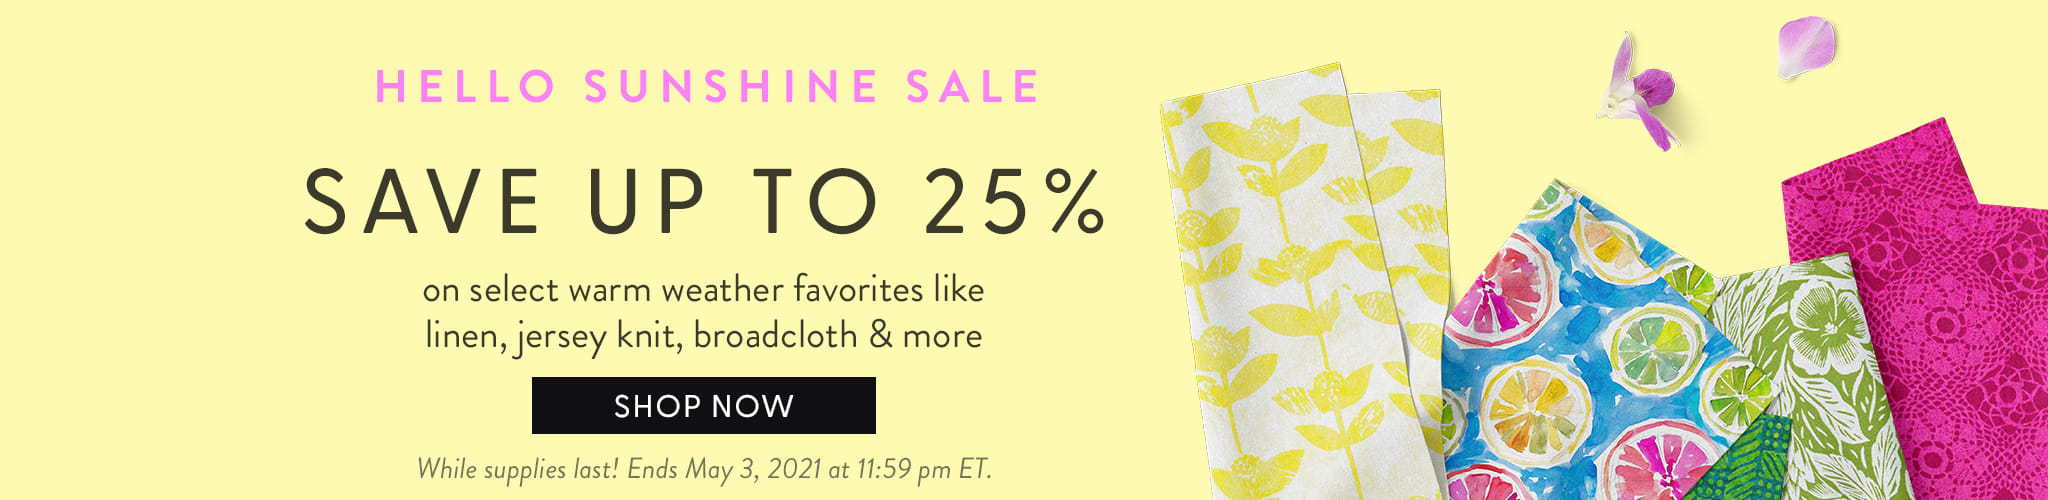 Hello Sunshine Sale! SAve up to 25% on select warm weather favorites like linen, jersey knit, broadcloth, & more.